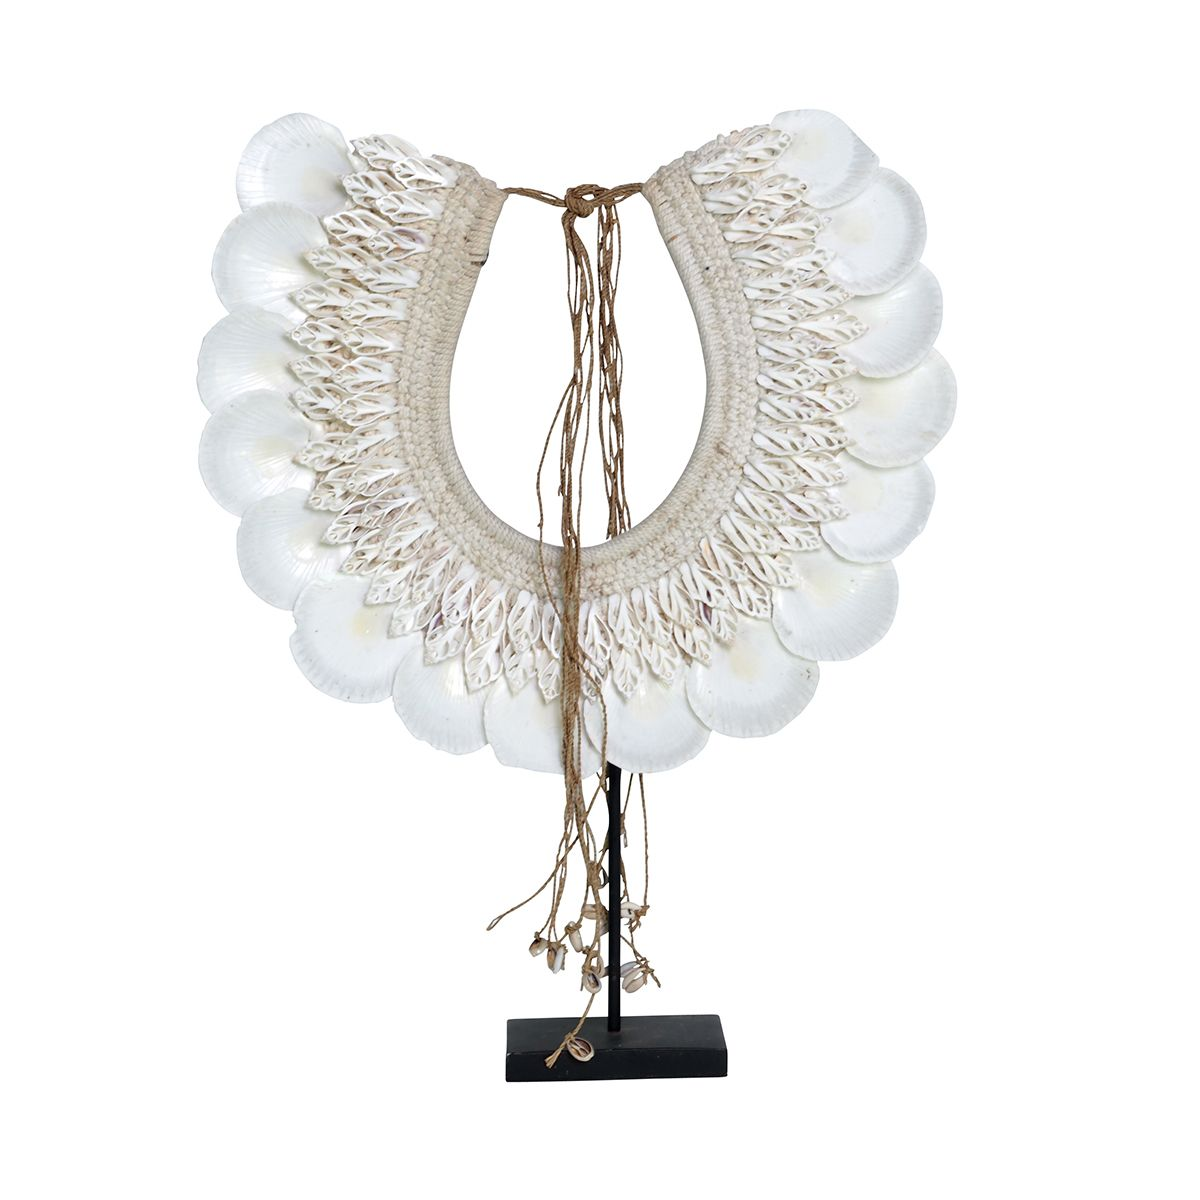 Cove Collar & Stand Small by Oz Design Furniture, a Statues & Ornaments for sale on Style Sourcebook